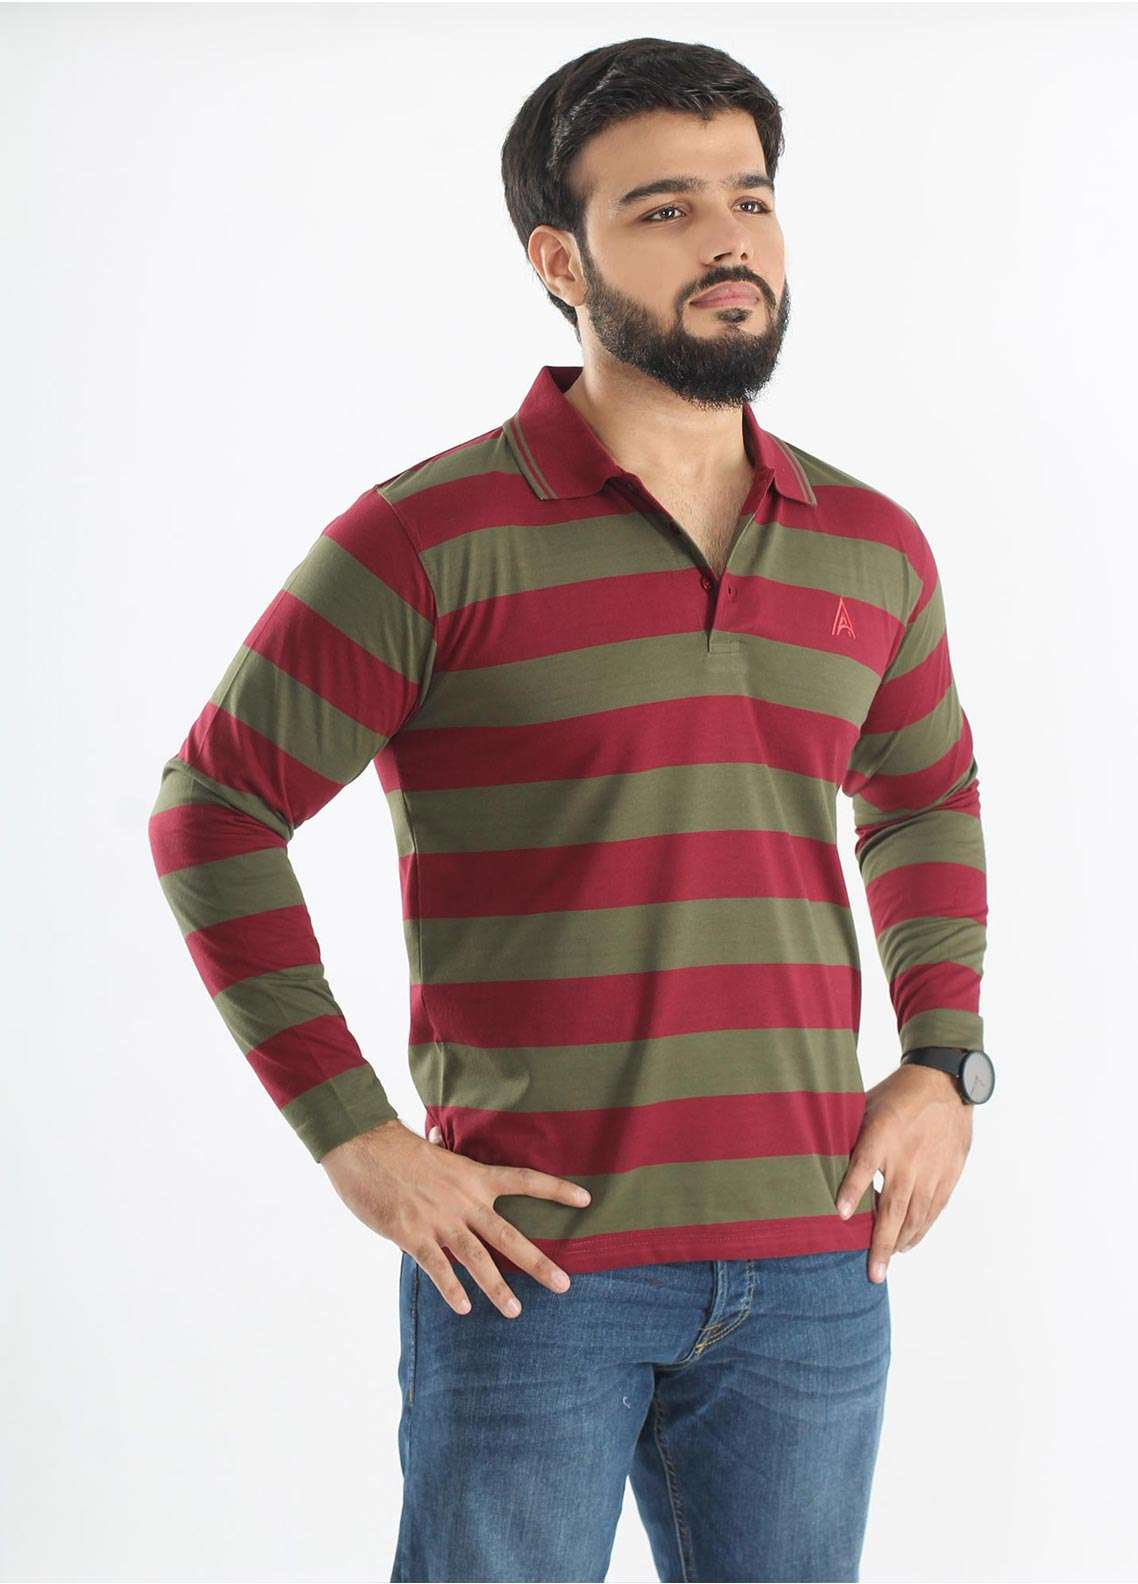 Anchor Jersey Polo T-Shirts for Men - Multi A-210